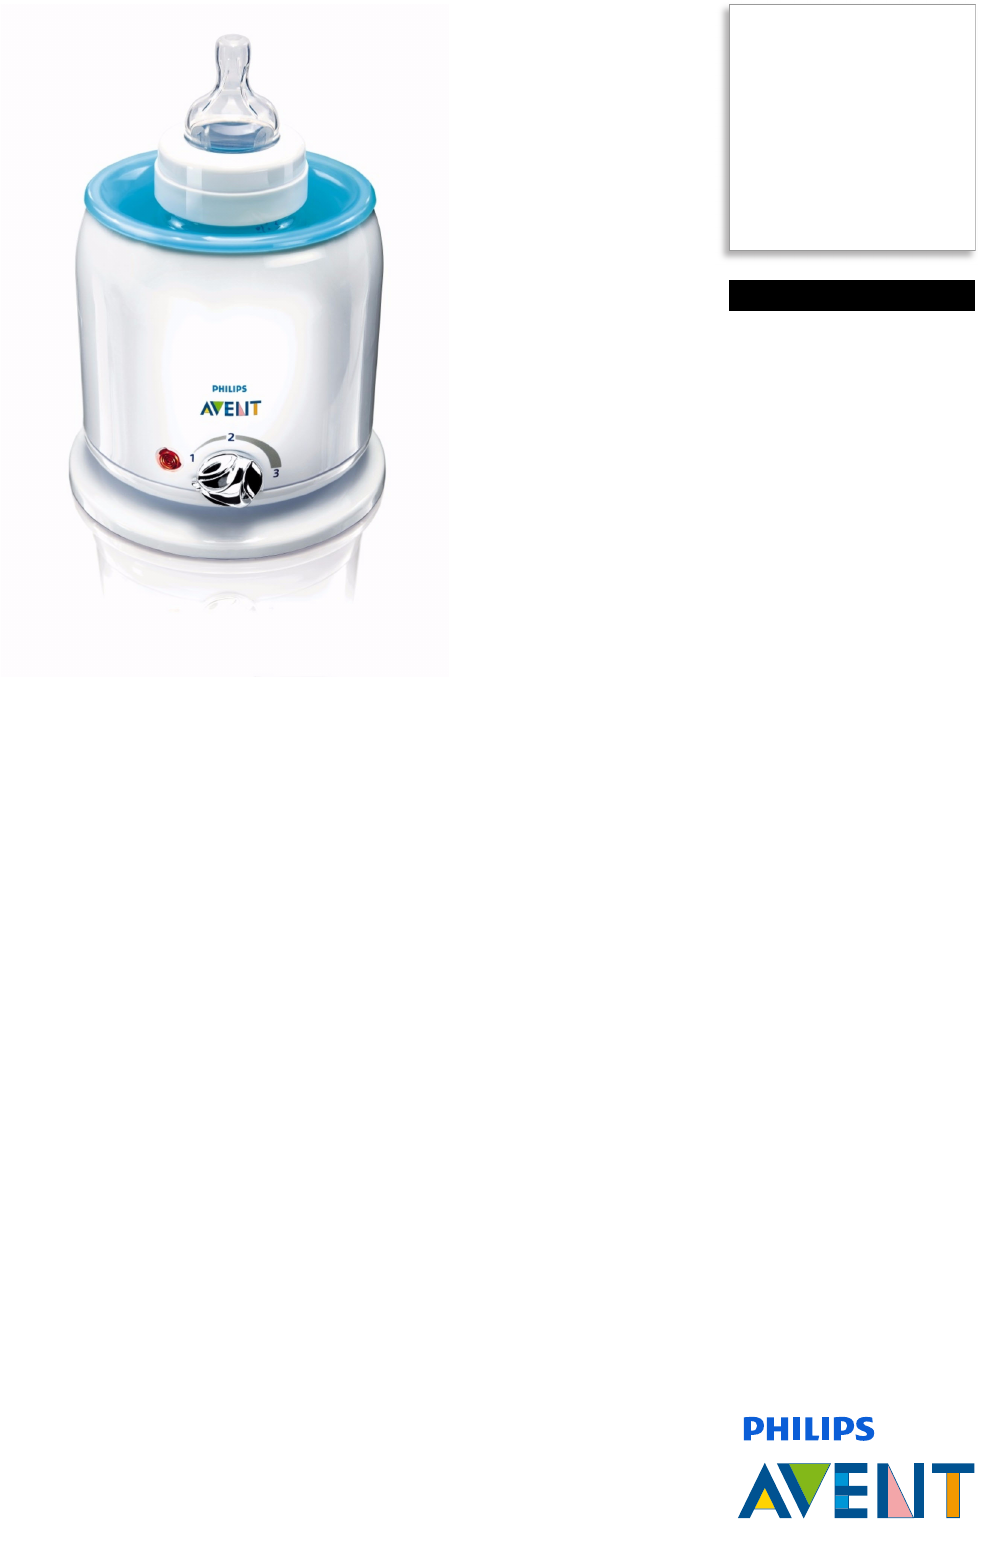 Philips Scf25512 Electric Bottle And Baby Food Warmer User Manual